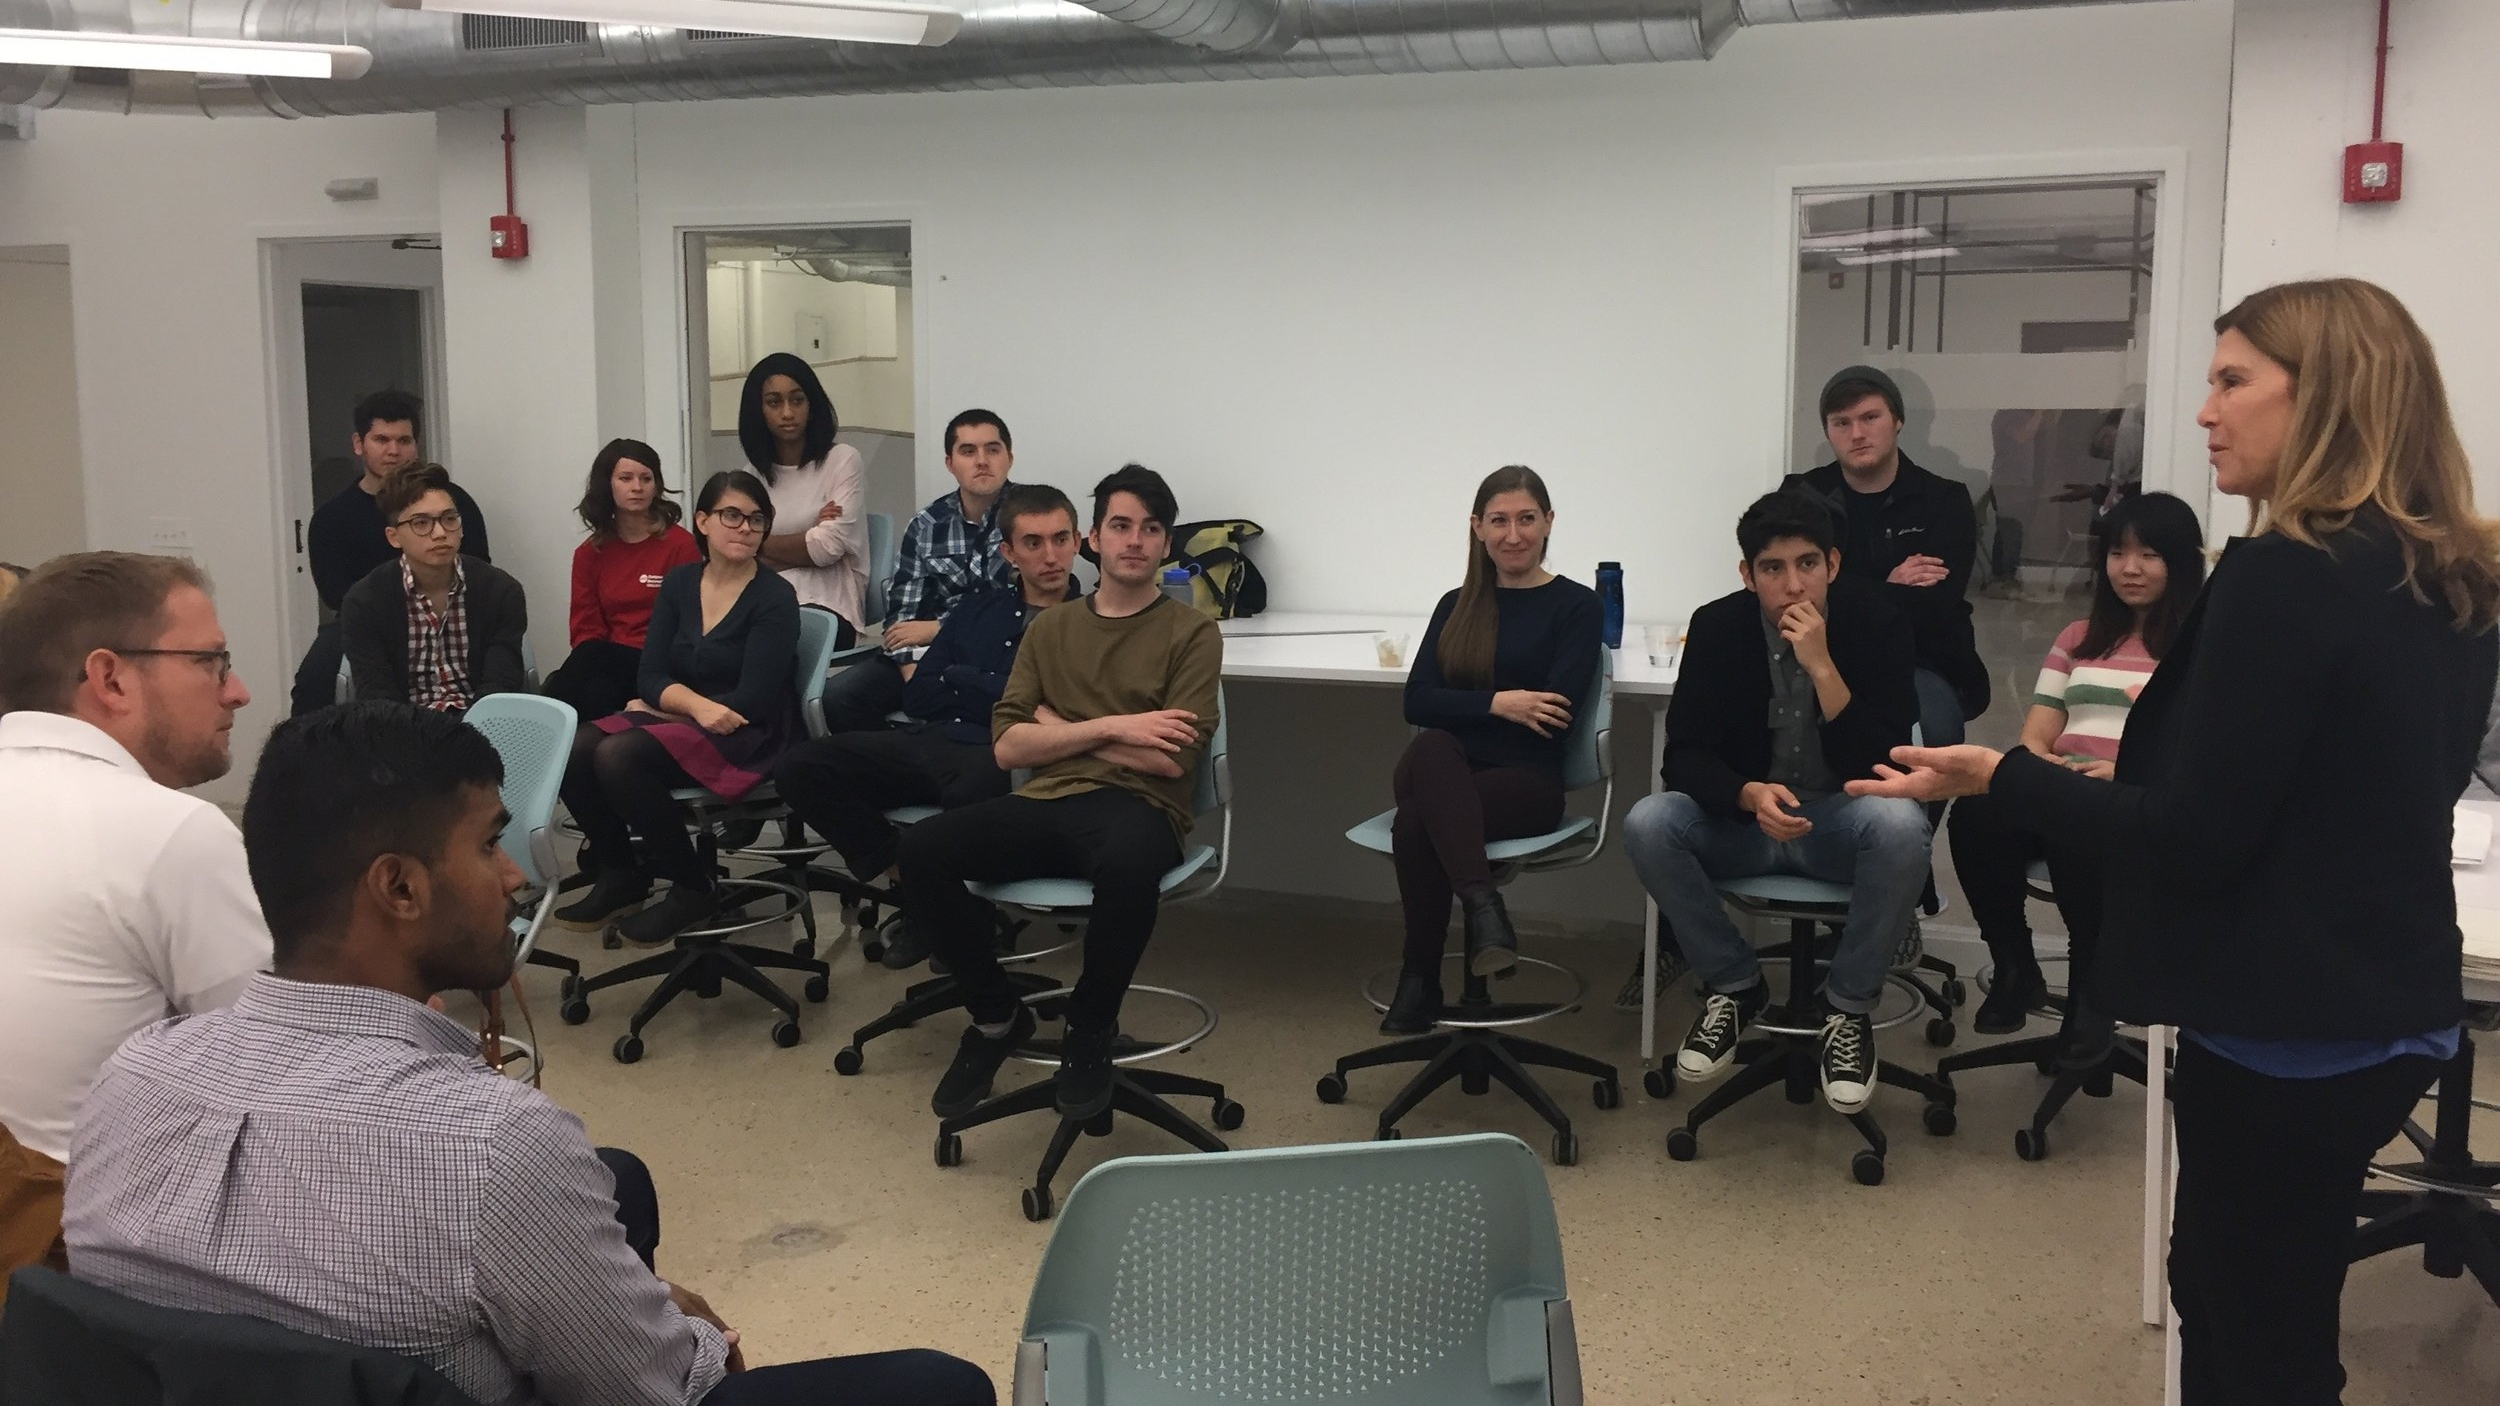 Cece Matot, Co-President of Matot, speaking with University of Illinois, Chicago Industrial Design students